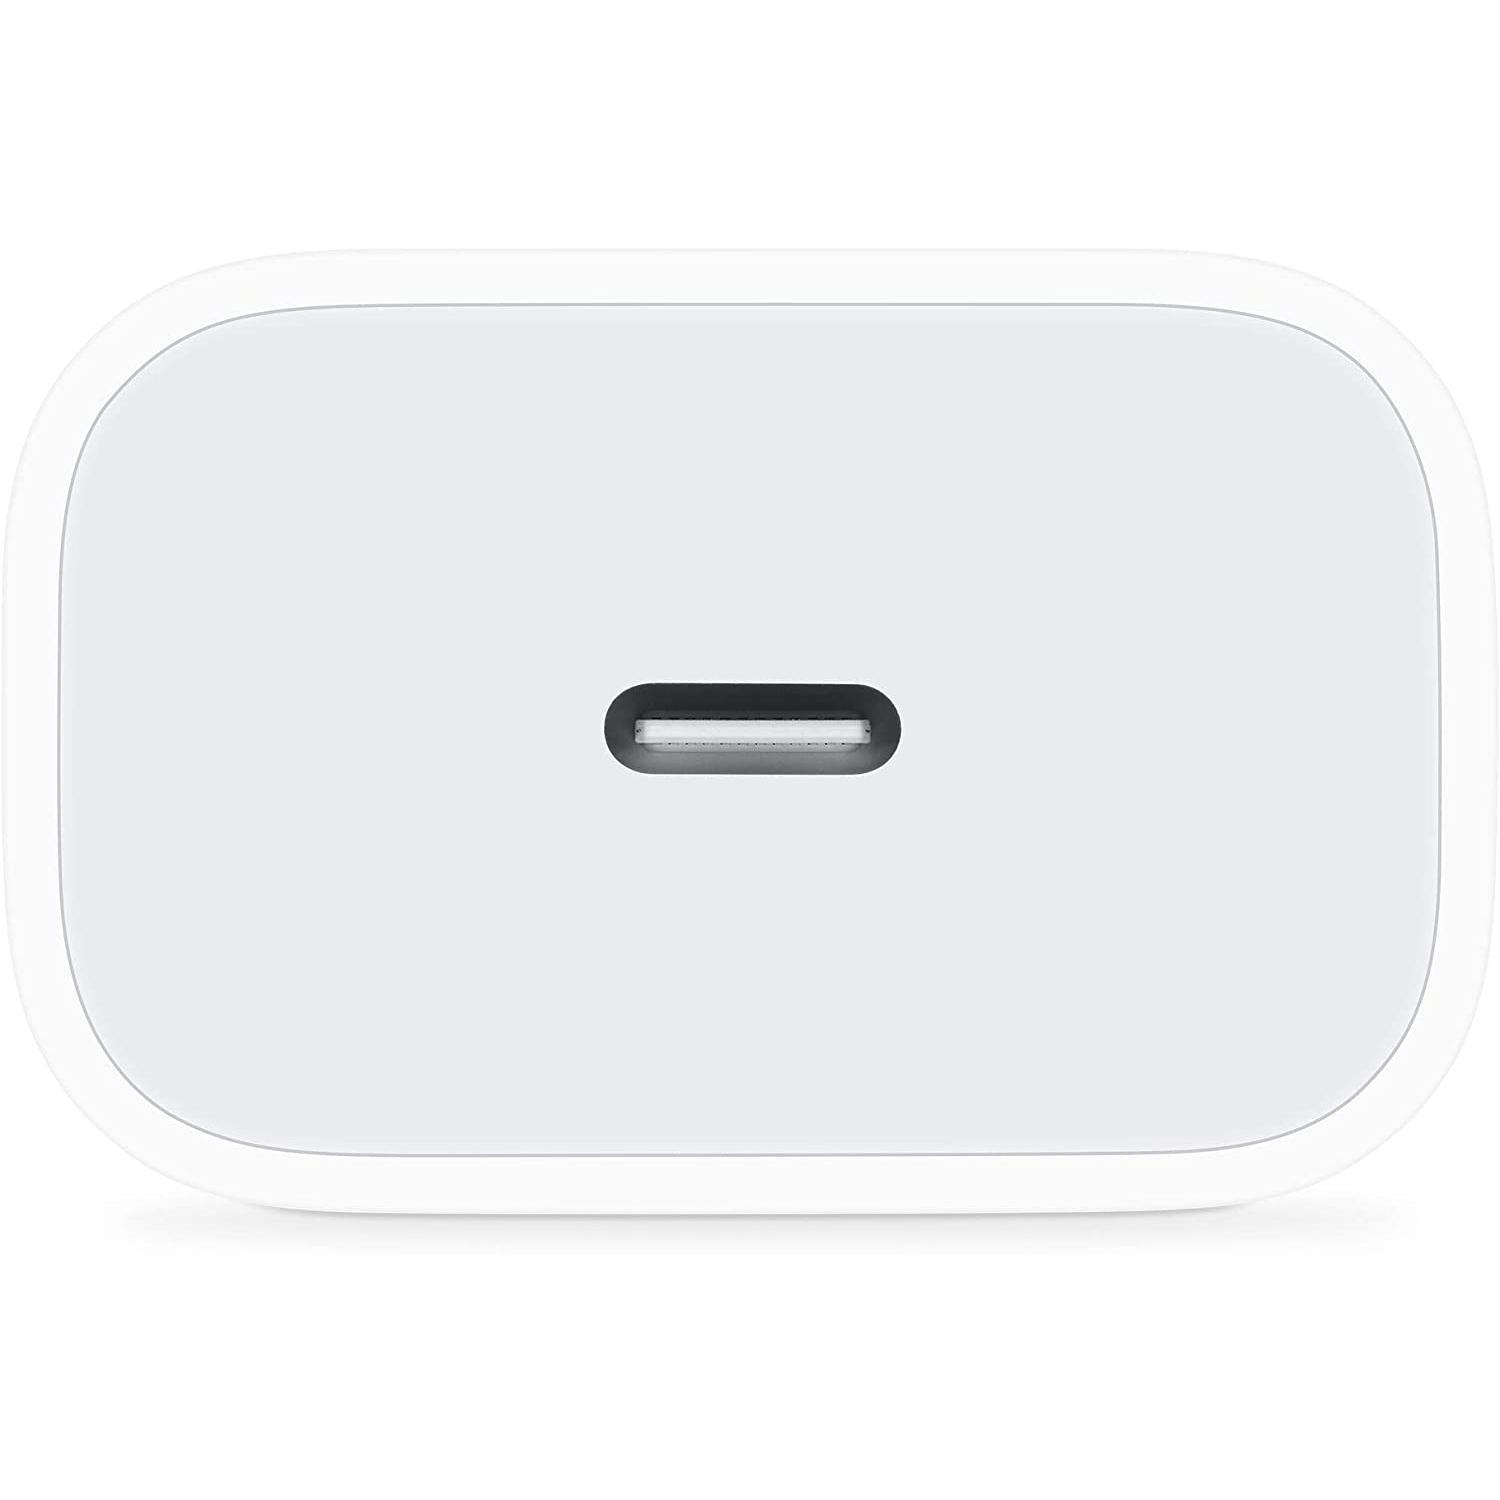 Apple 18W Fast Charging for iPhone 11 Pro & iPad Pro